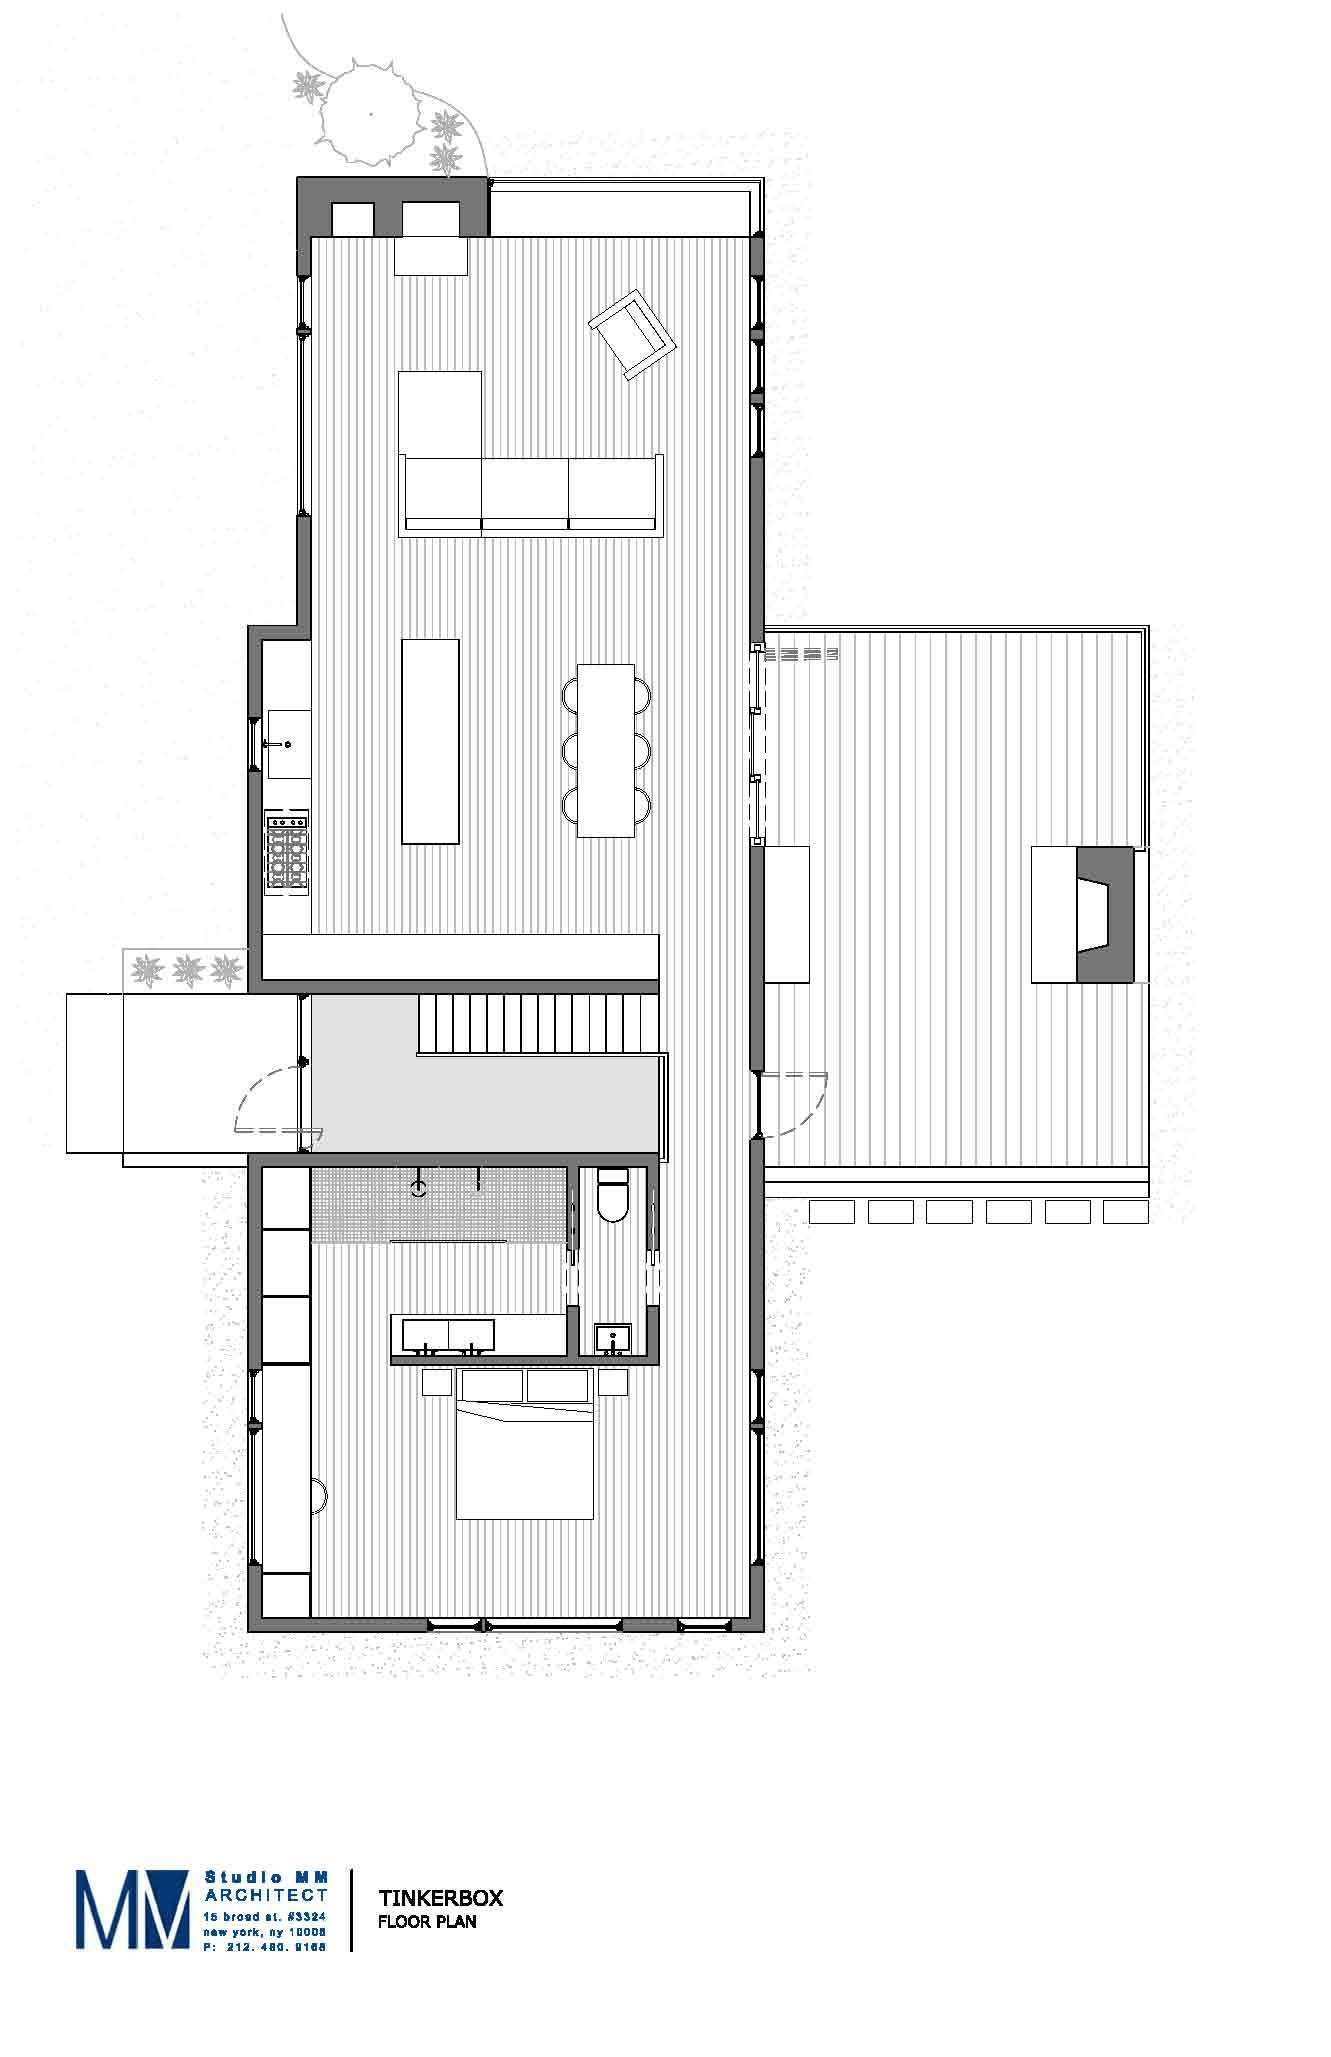 Gallery Of Tinkerbox Studio Mm Architect 11 House Floor Plans House Plans Floor Plans